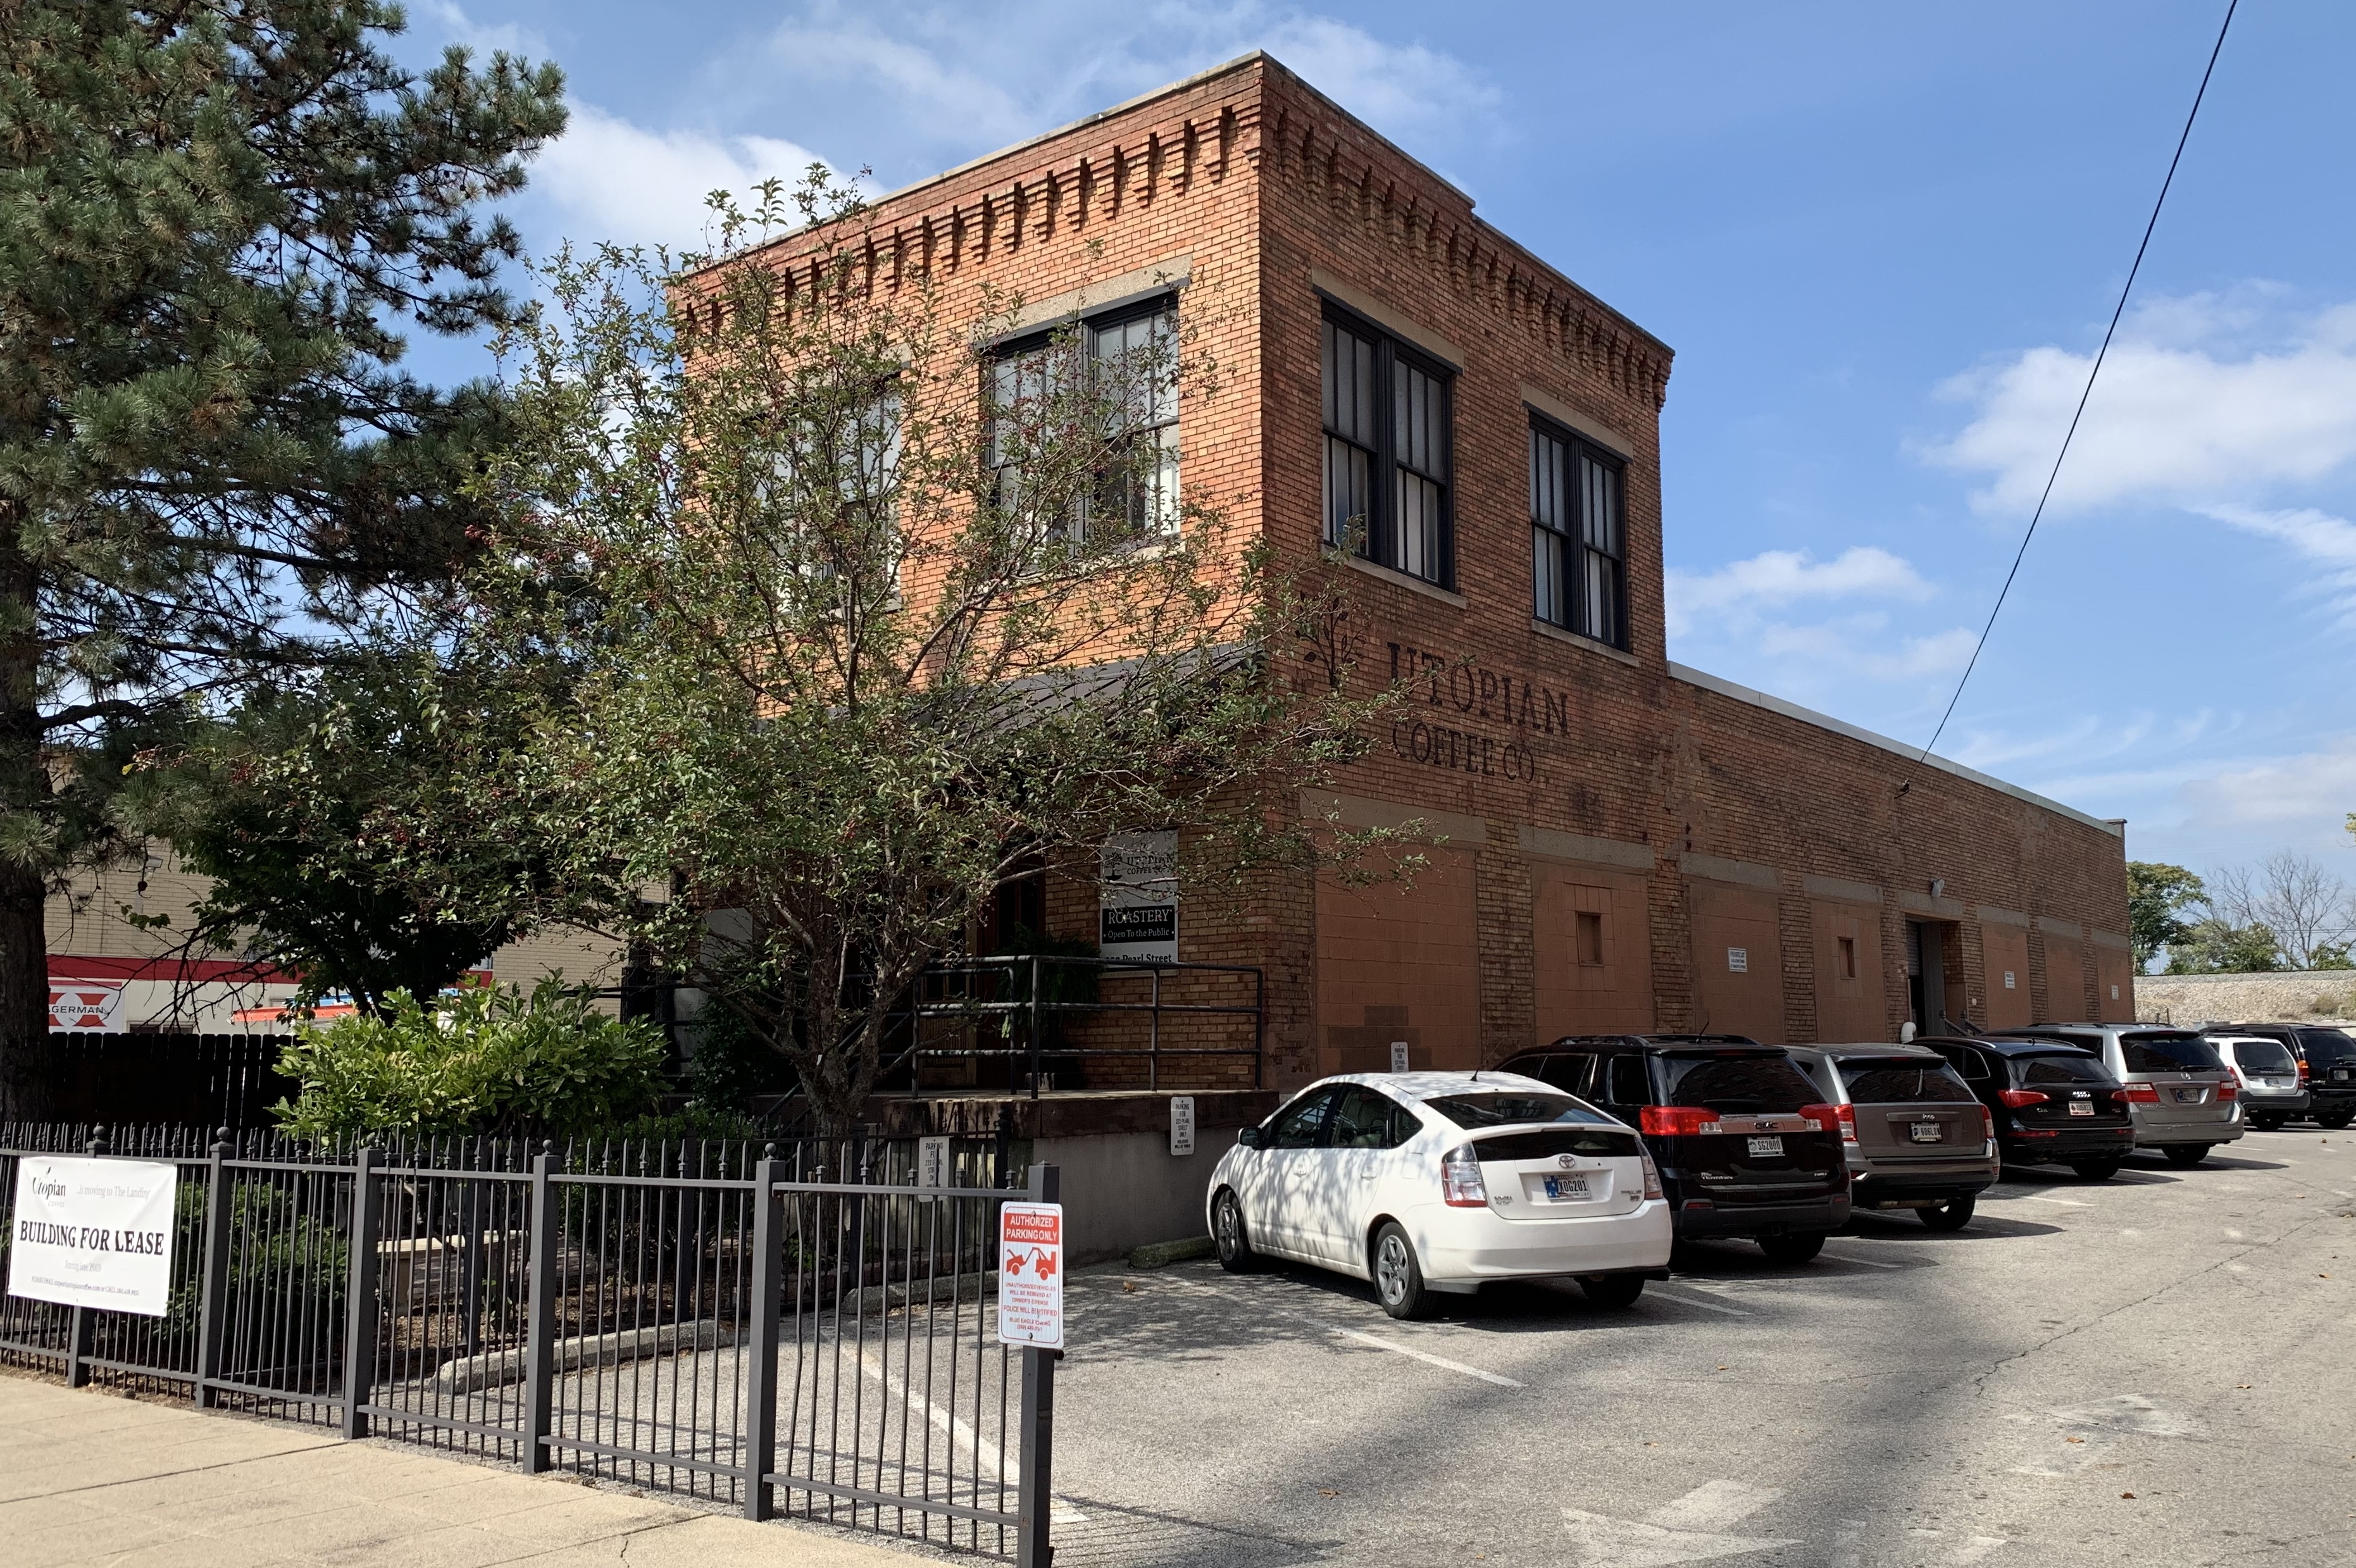 222 Pearl - Building for Lease